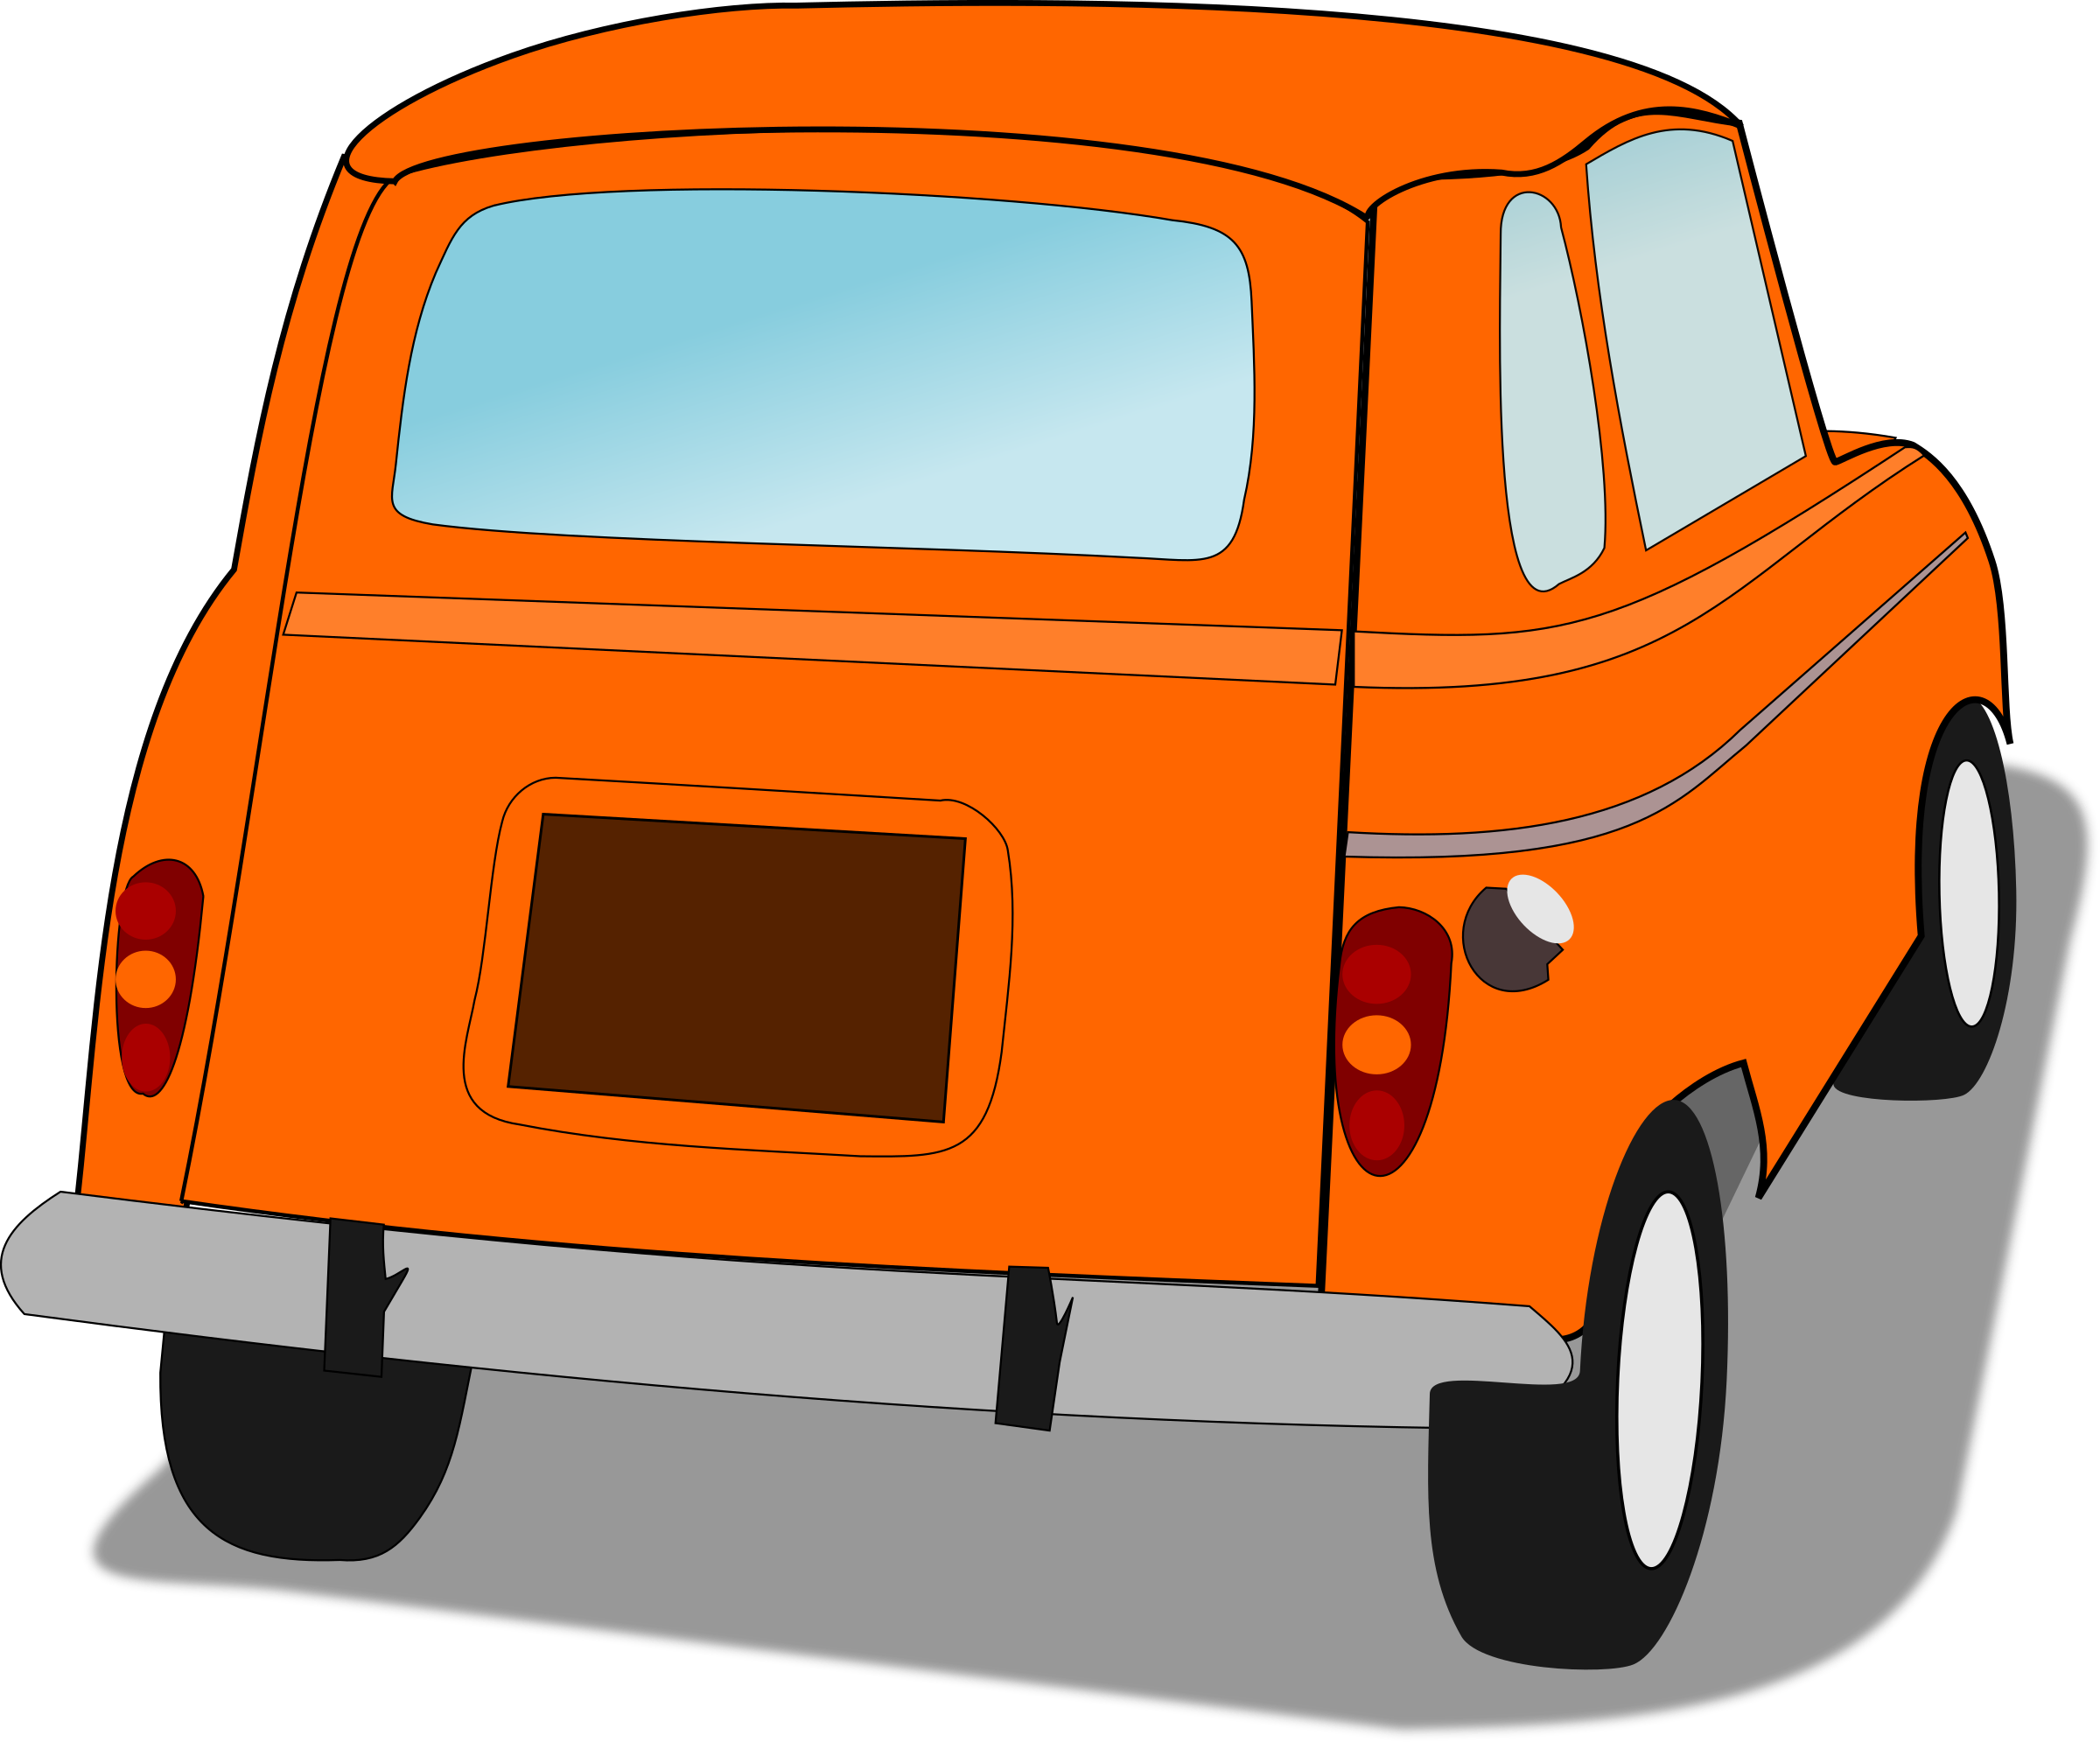 Car from behind clipart clip freeuse stock 28+ Collection of Car From Behind Clipart | High quality, free ... clip freeuse stock